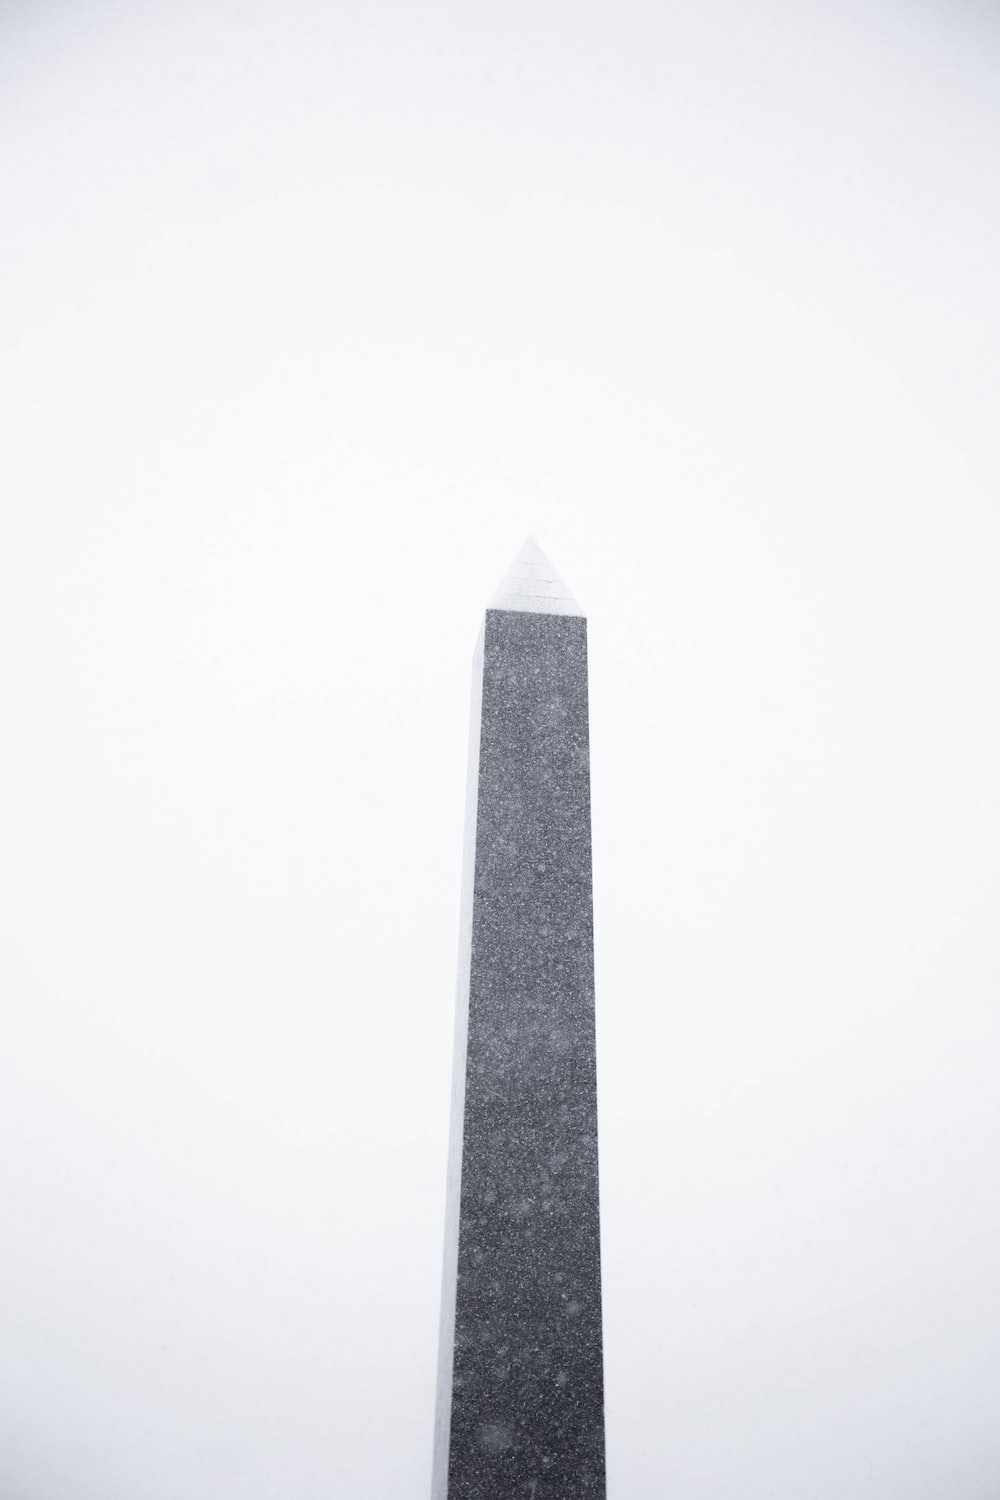 gray concrete tower under white sky